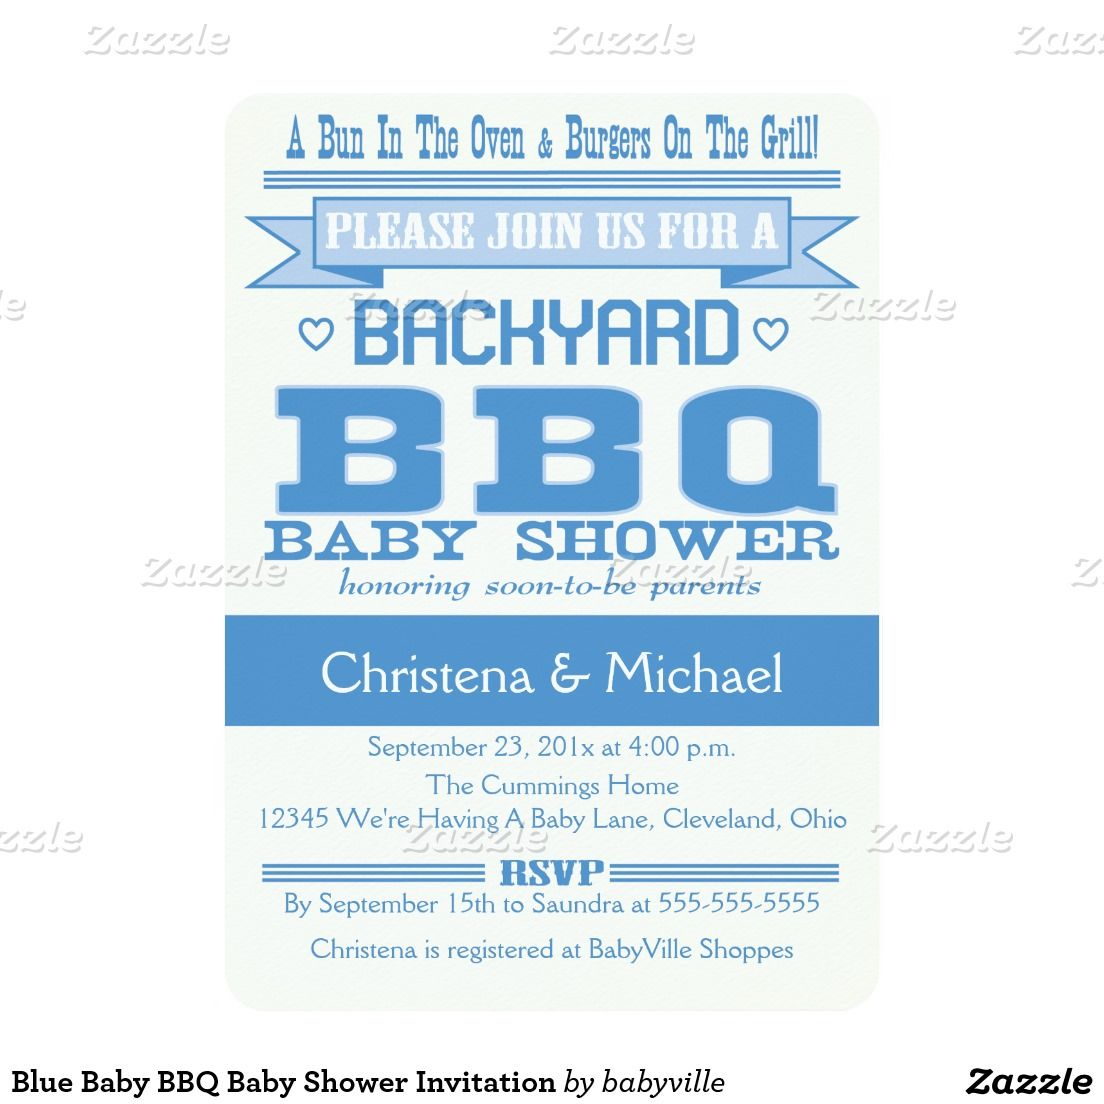 Blue Baby BBQ Baby Shower Invitation | Shower invitations